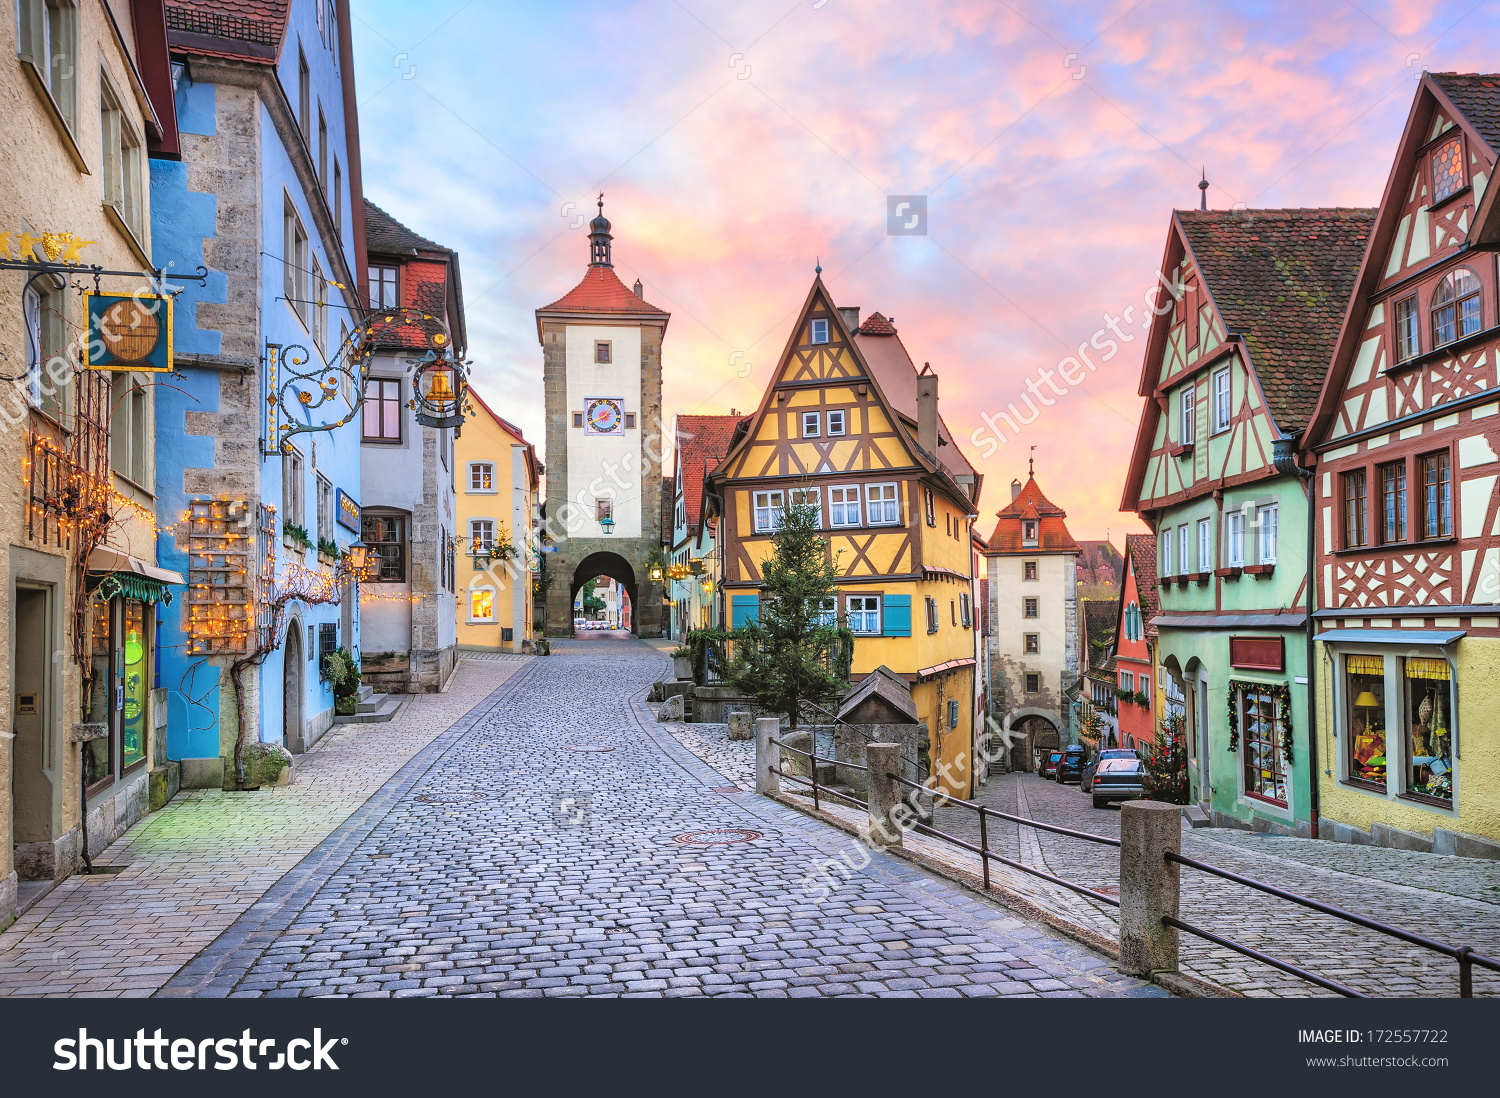 Rothenburg Ob Der Tauber Picturesque Medieval Stock Photo.